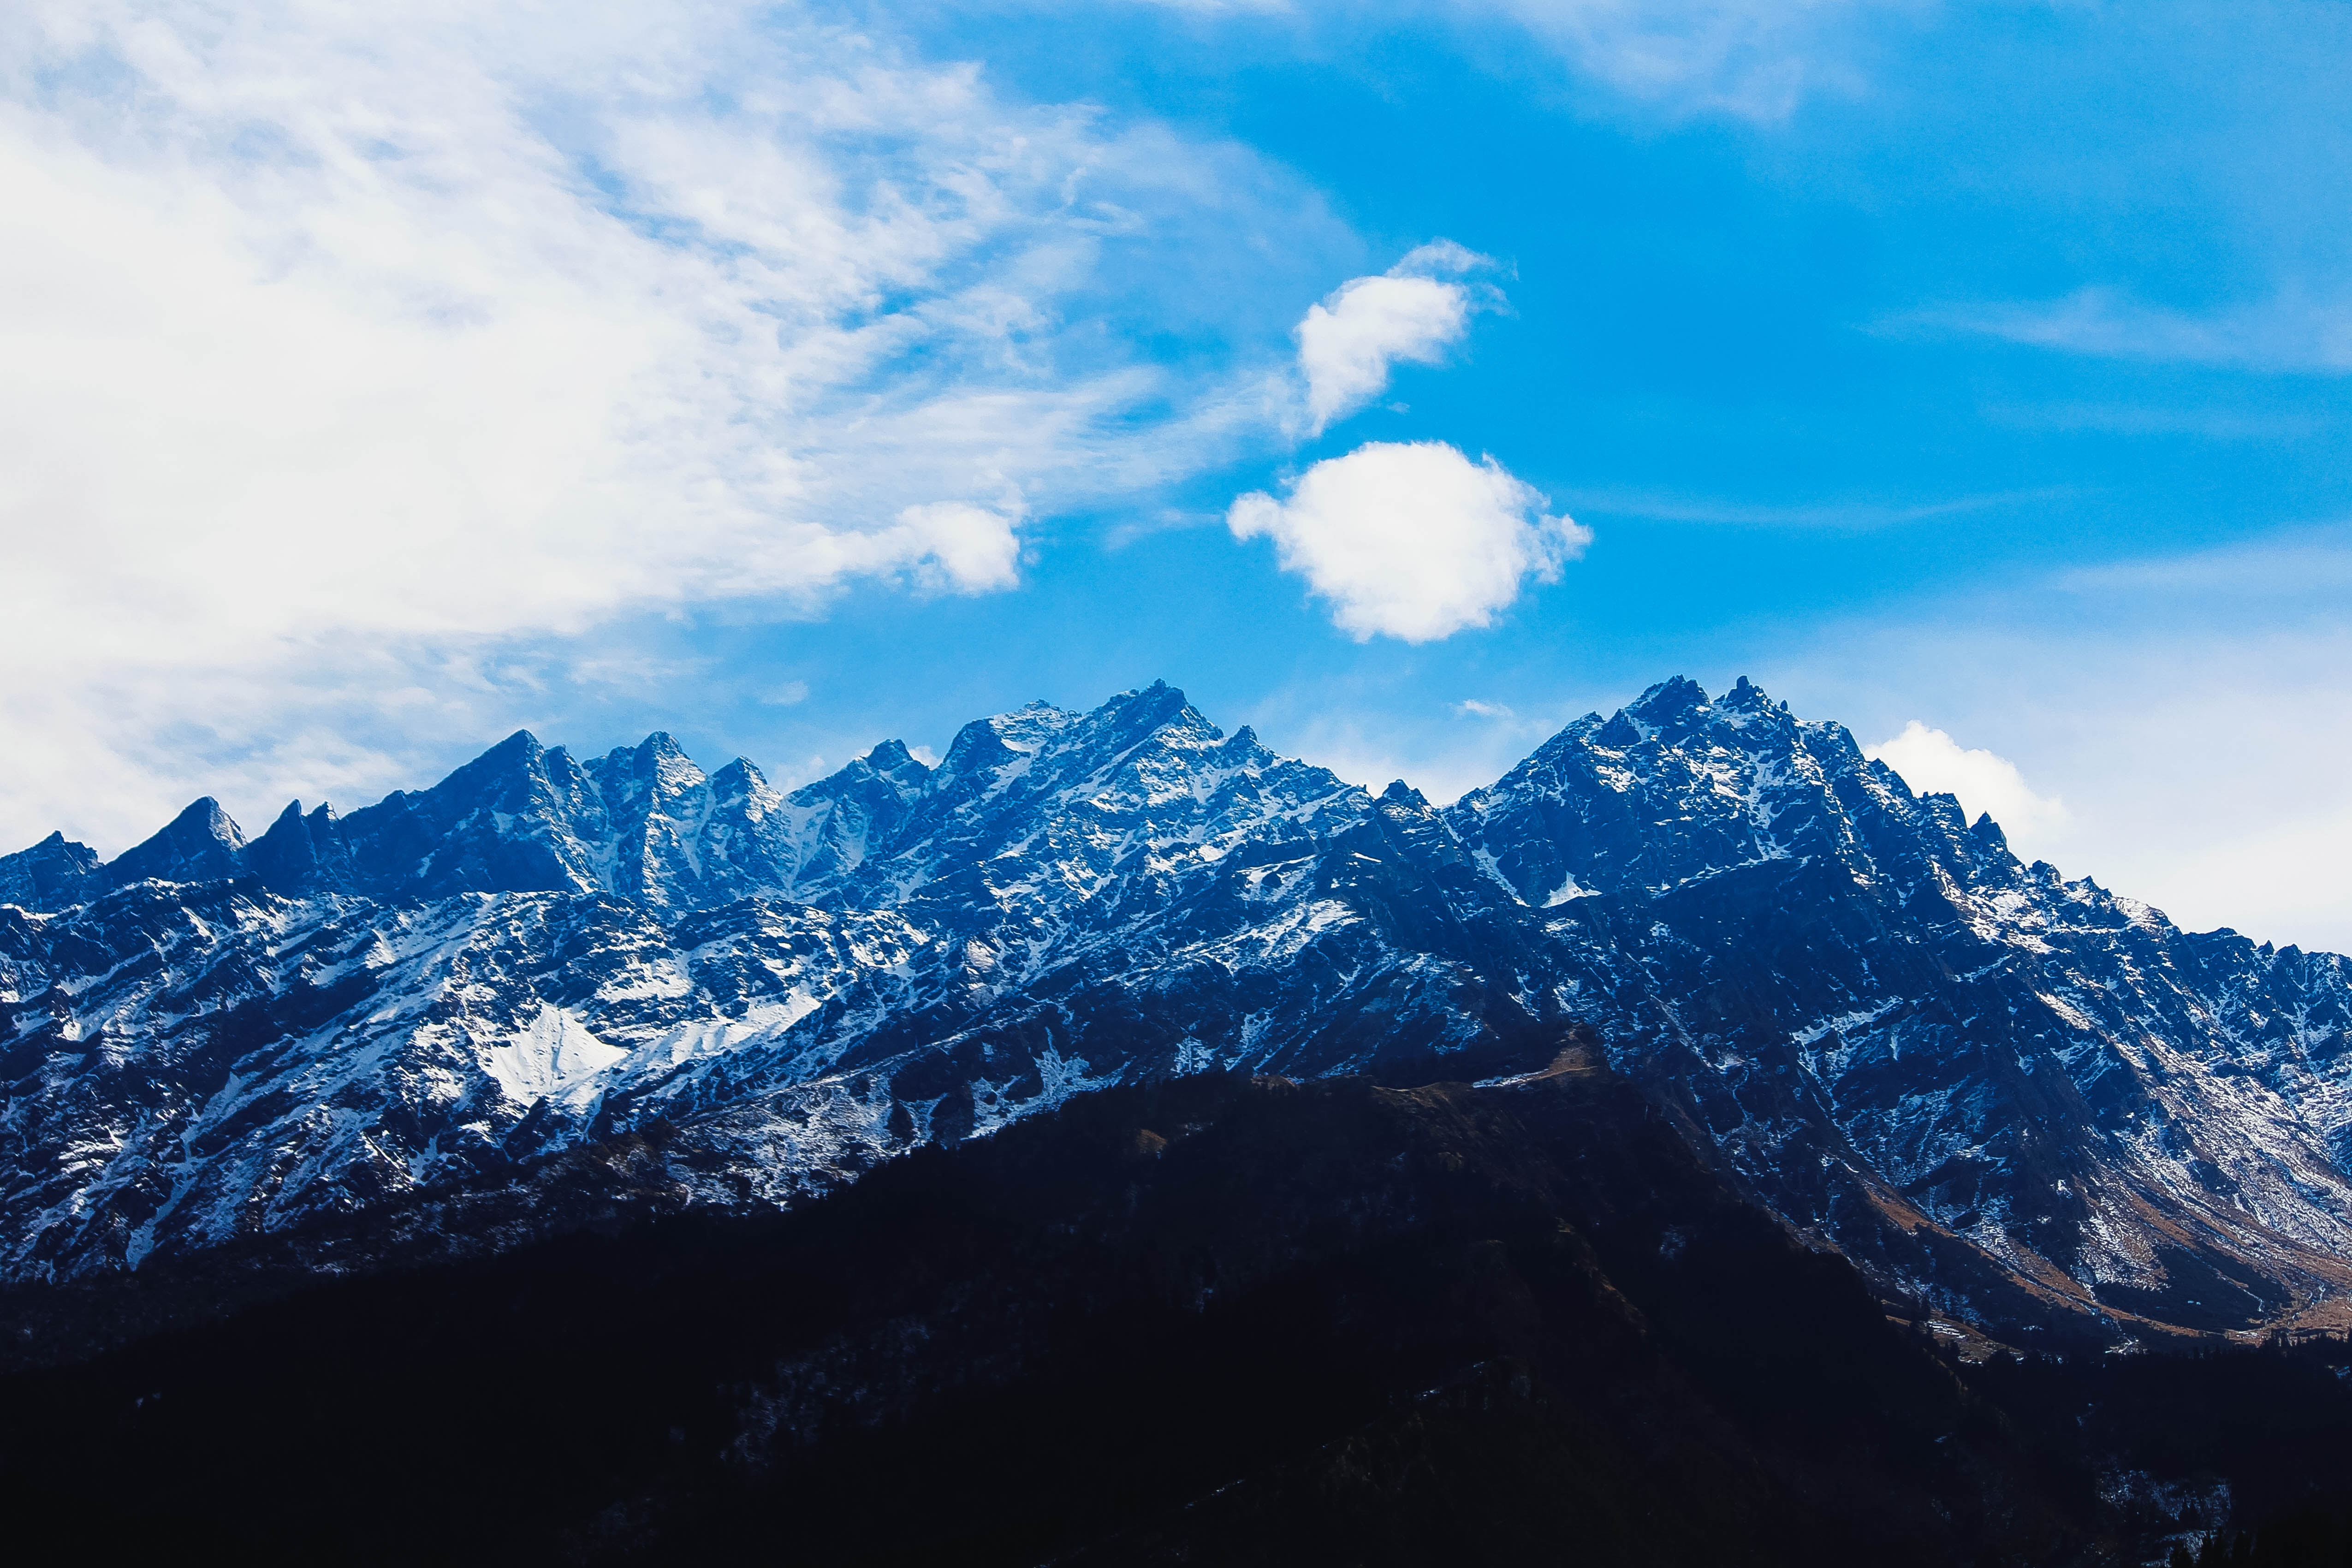 Mountain under white clouds at daytime photo